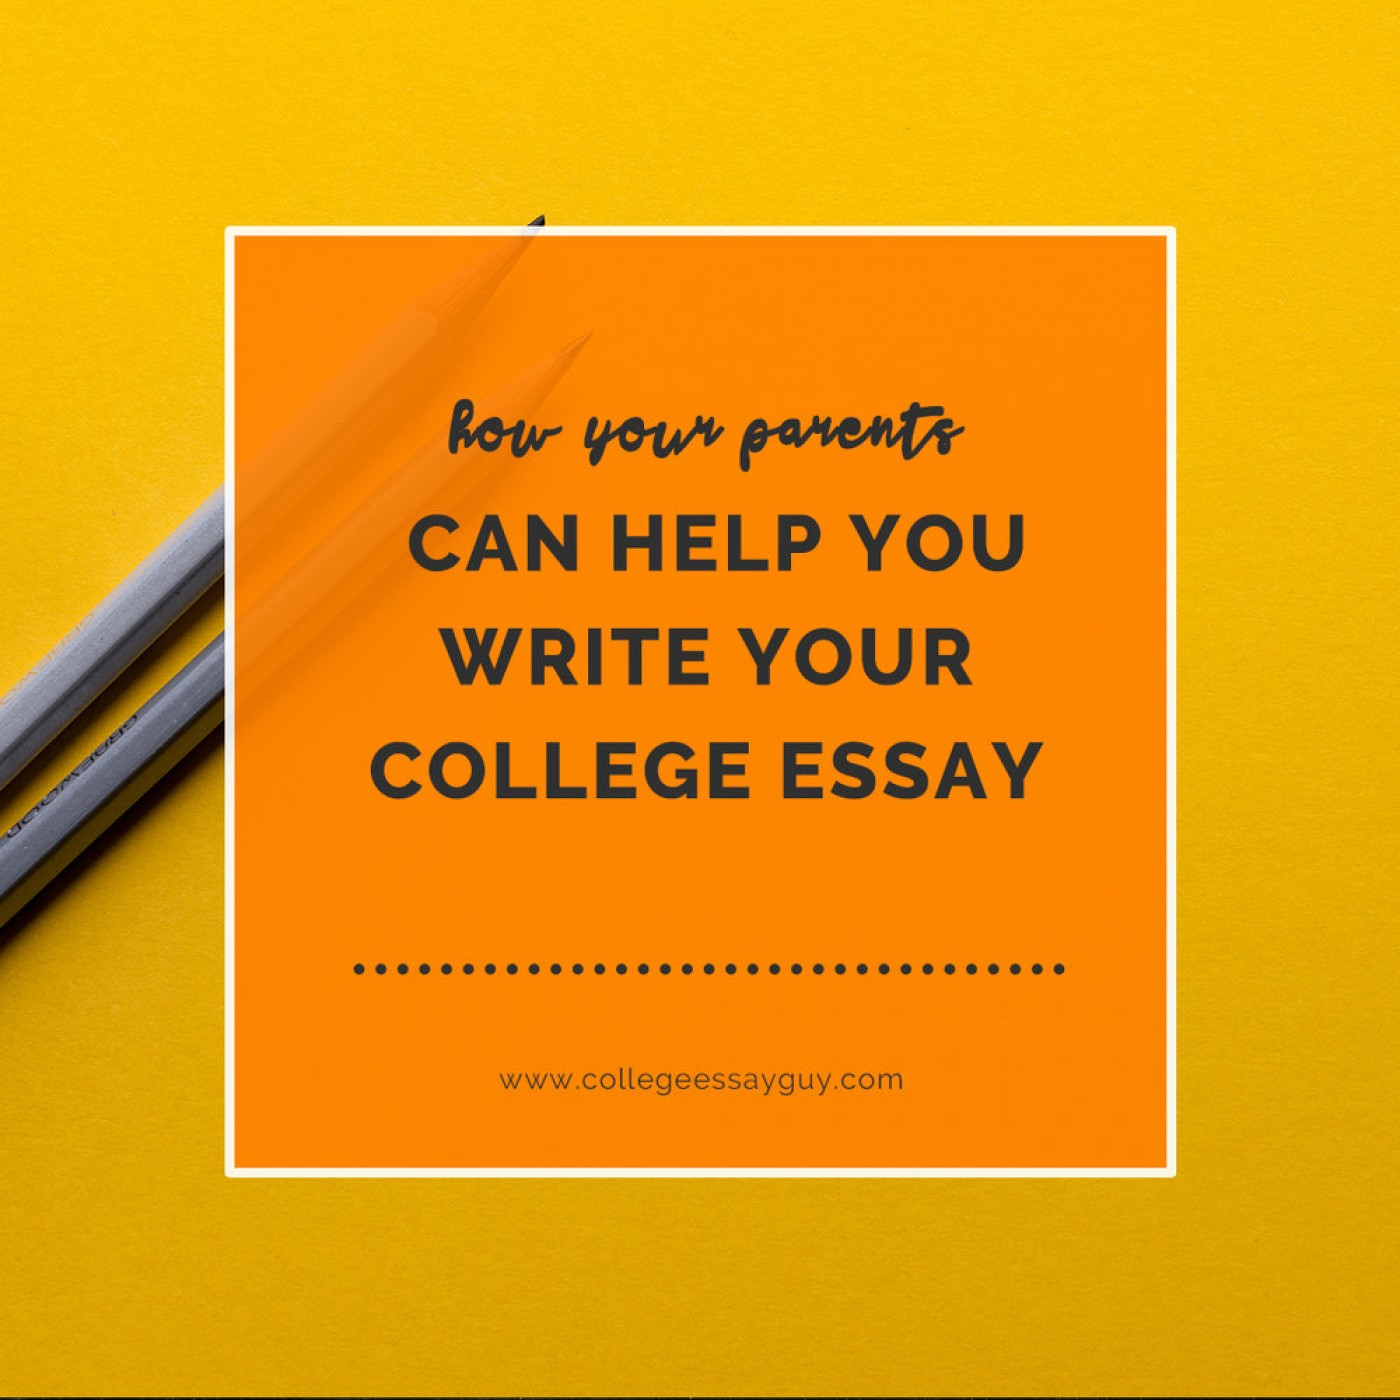 002 Essay Writing Help Example Frightening For Middle School Near Me 1400